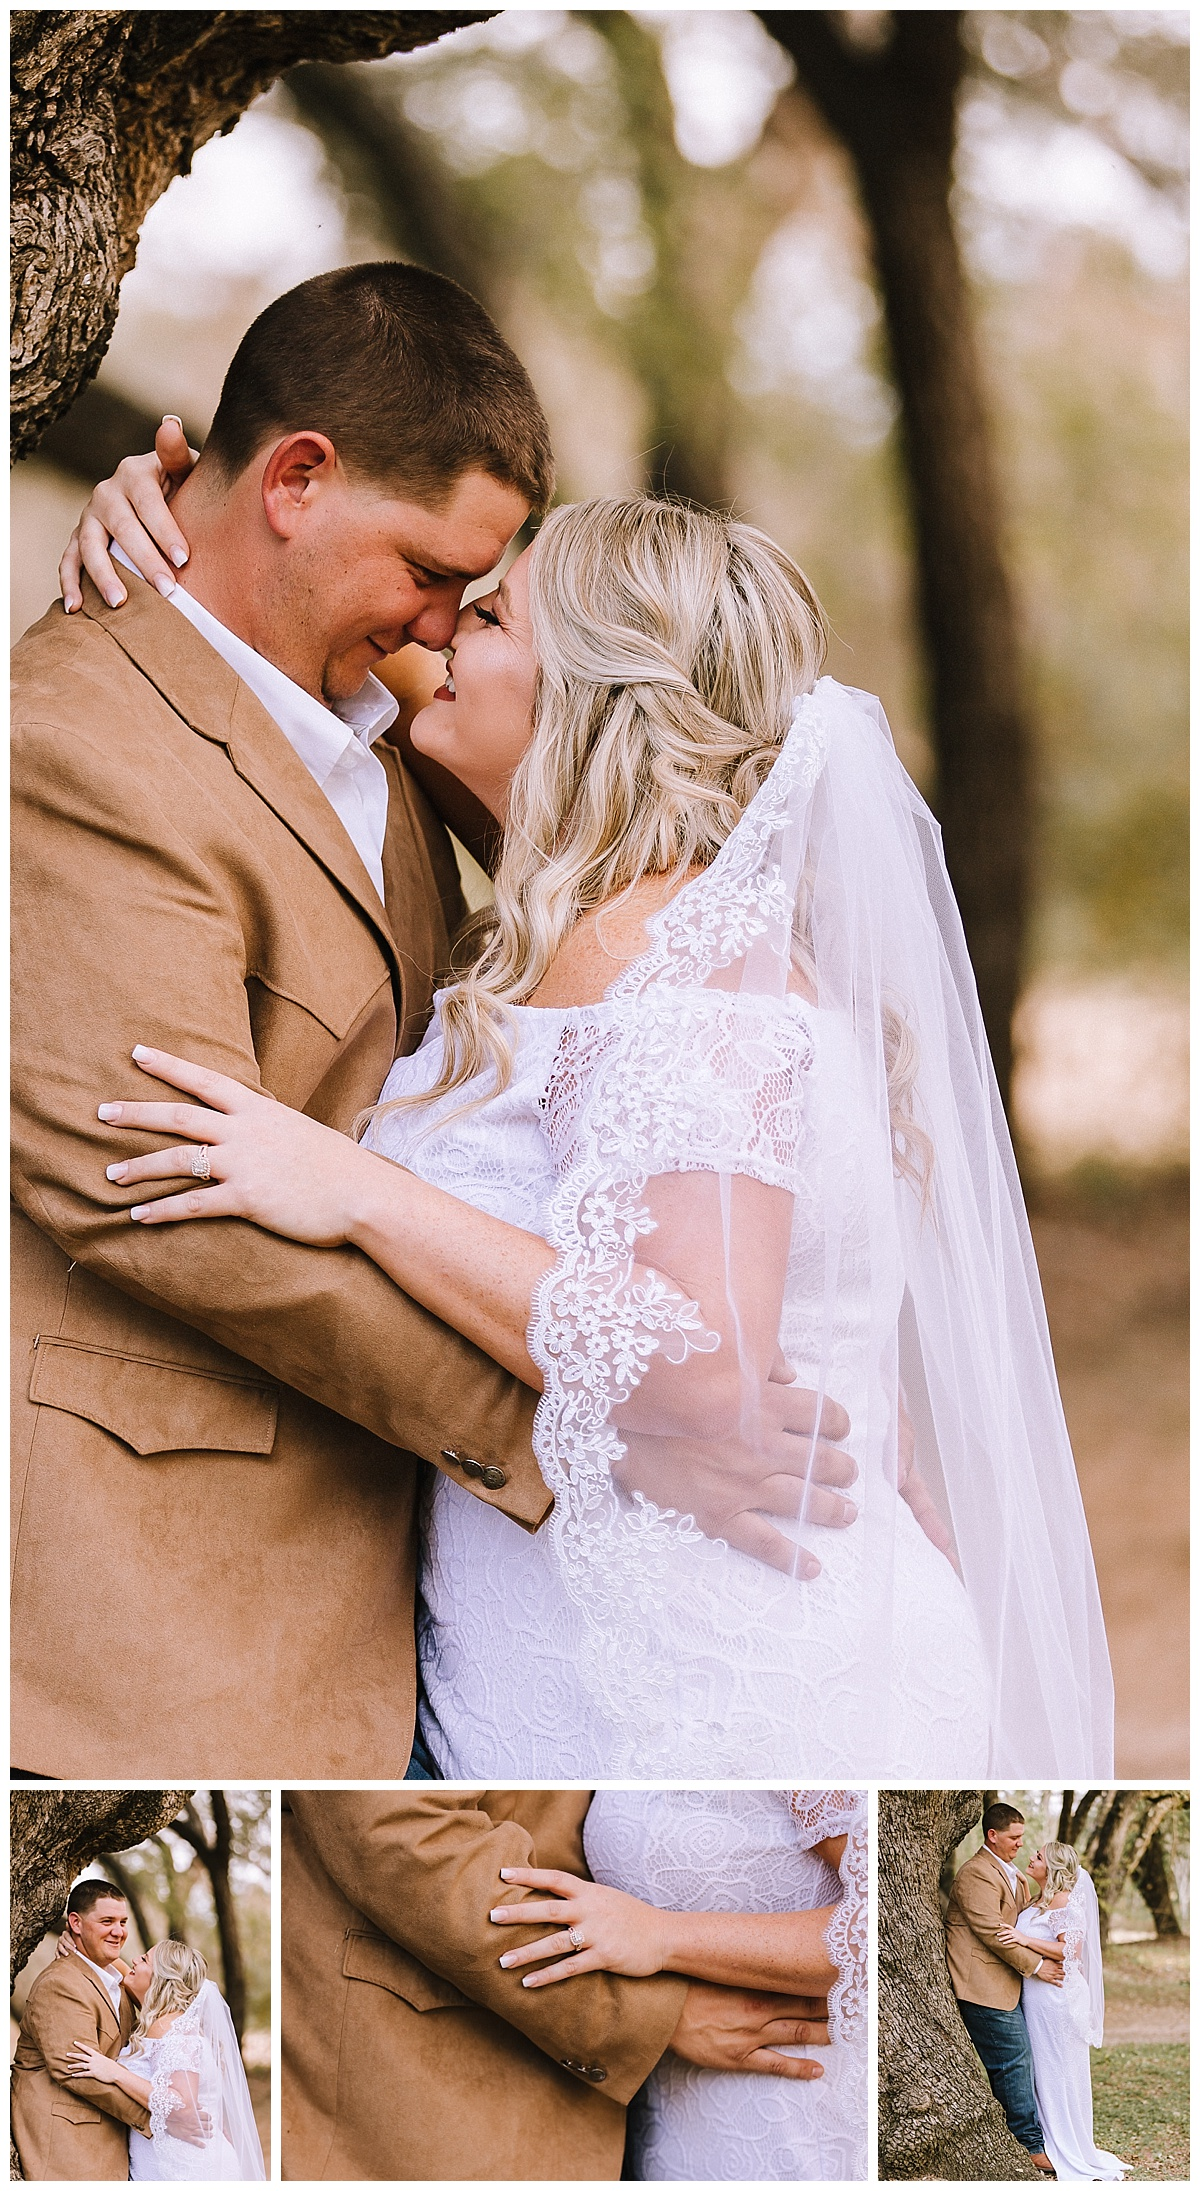 Wedding-Photographer-LaVernia-Texas-Ceremony-Under-the-Trees-Bride-Groom-Fall-McDonald-Carly-Barton-Photography_0007.jpg